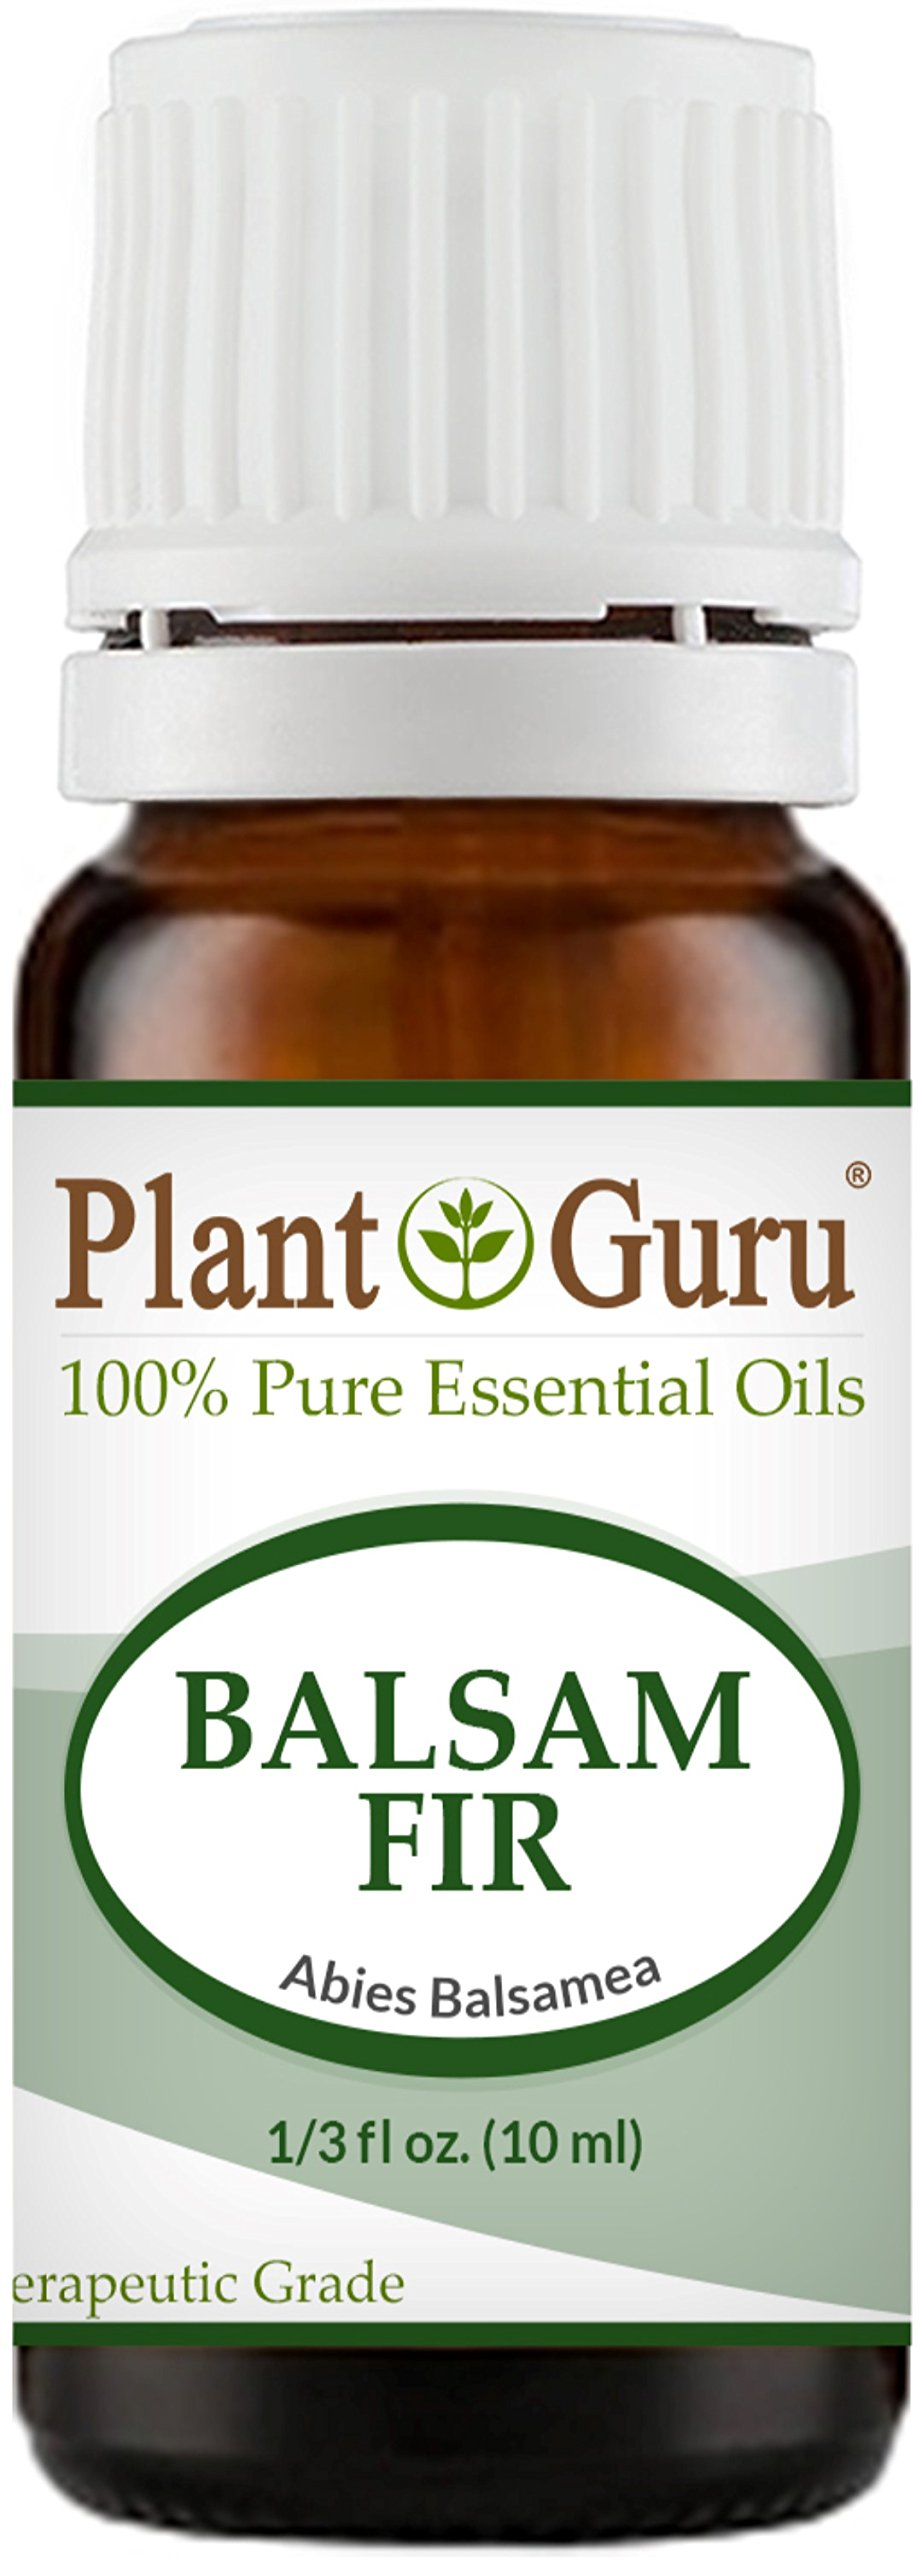 Balsam Fir Needle Essential Oil 10 ml 100% Pure Undiluted Therapeutic Grade